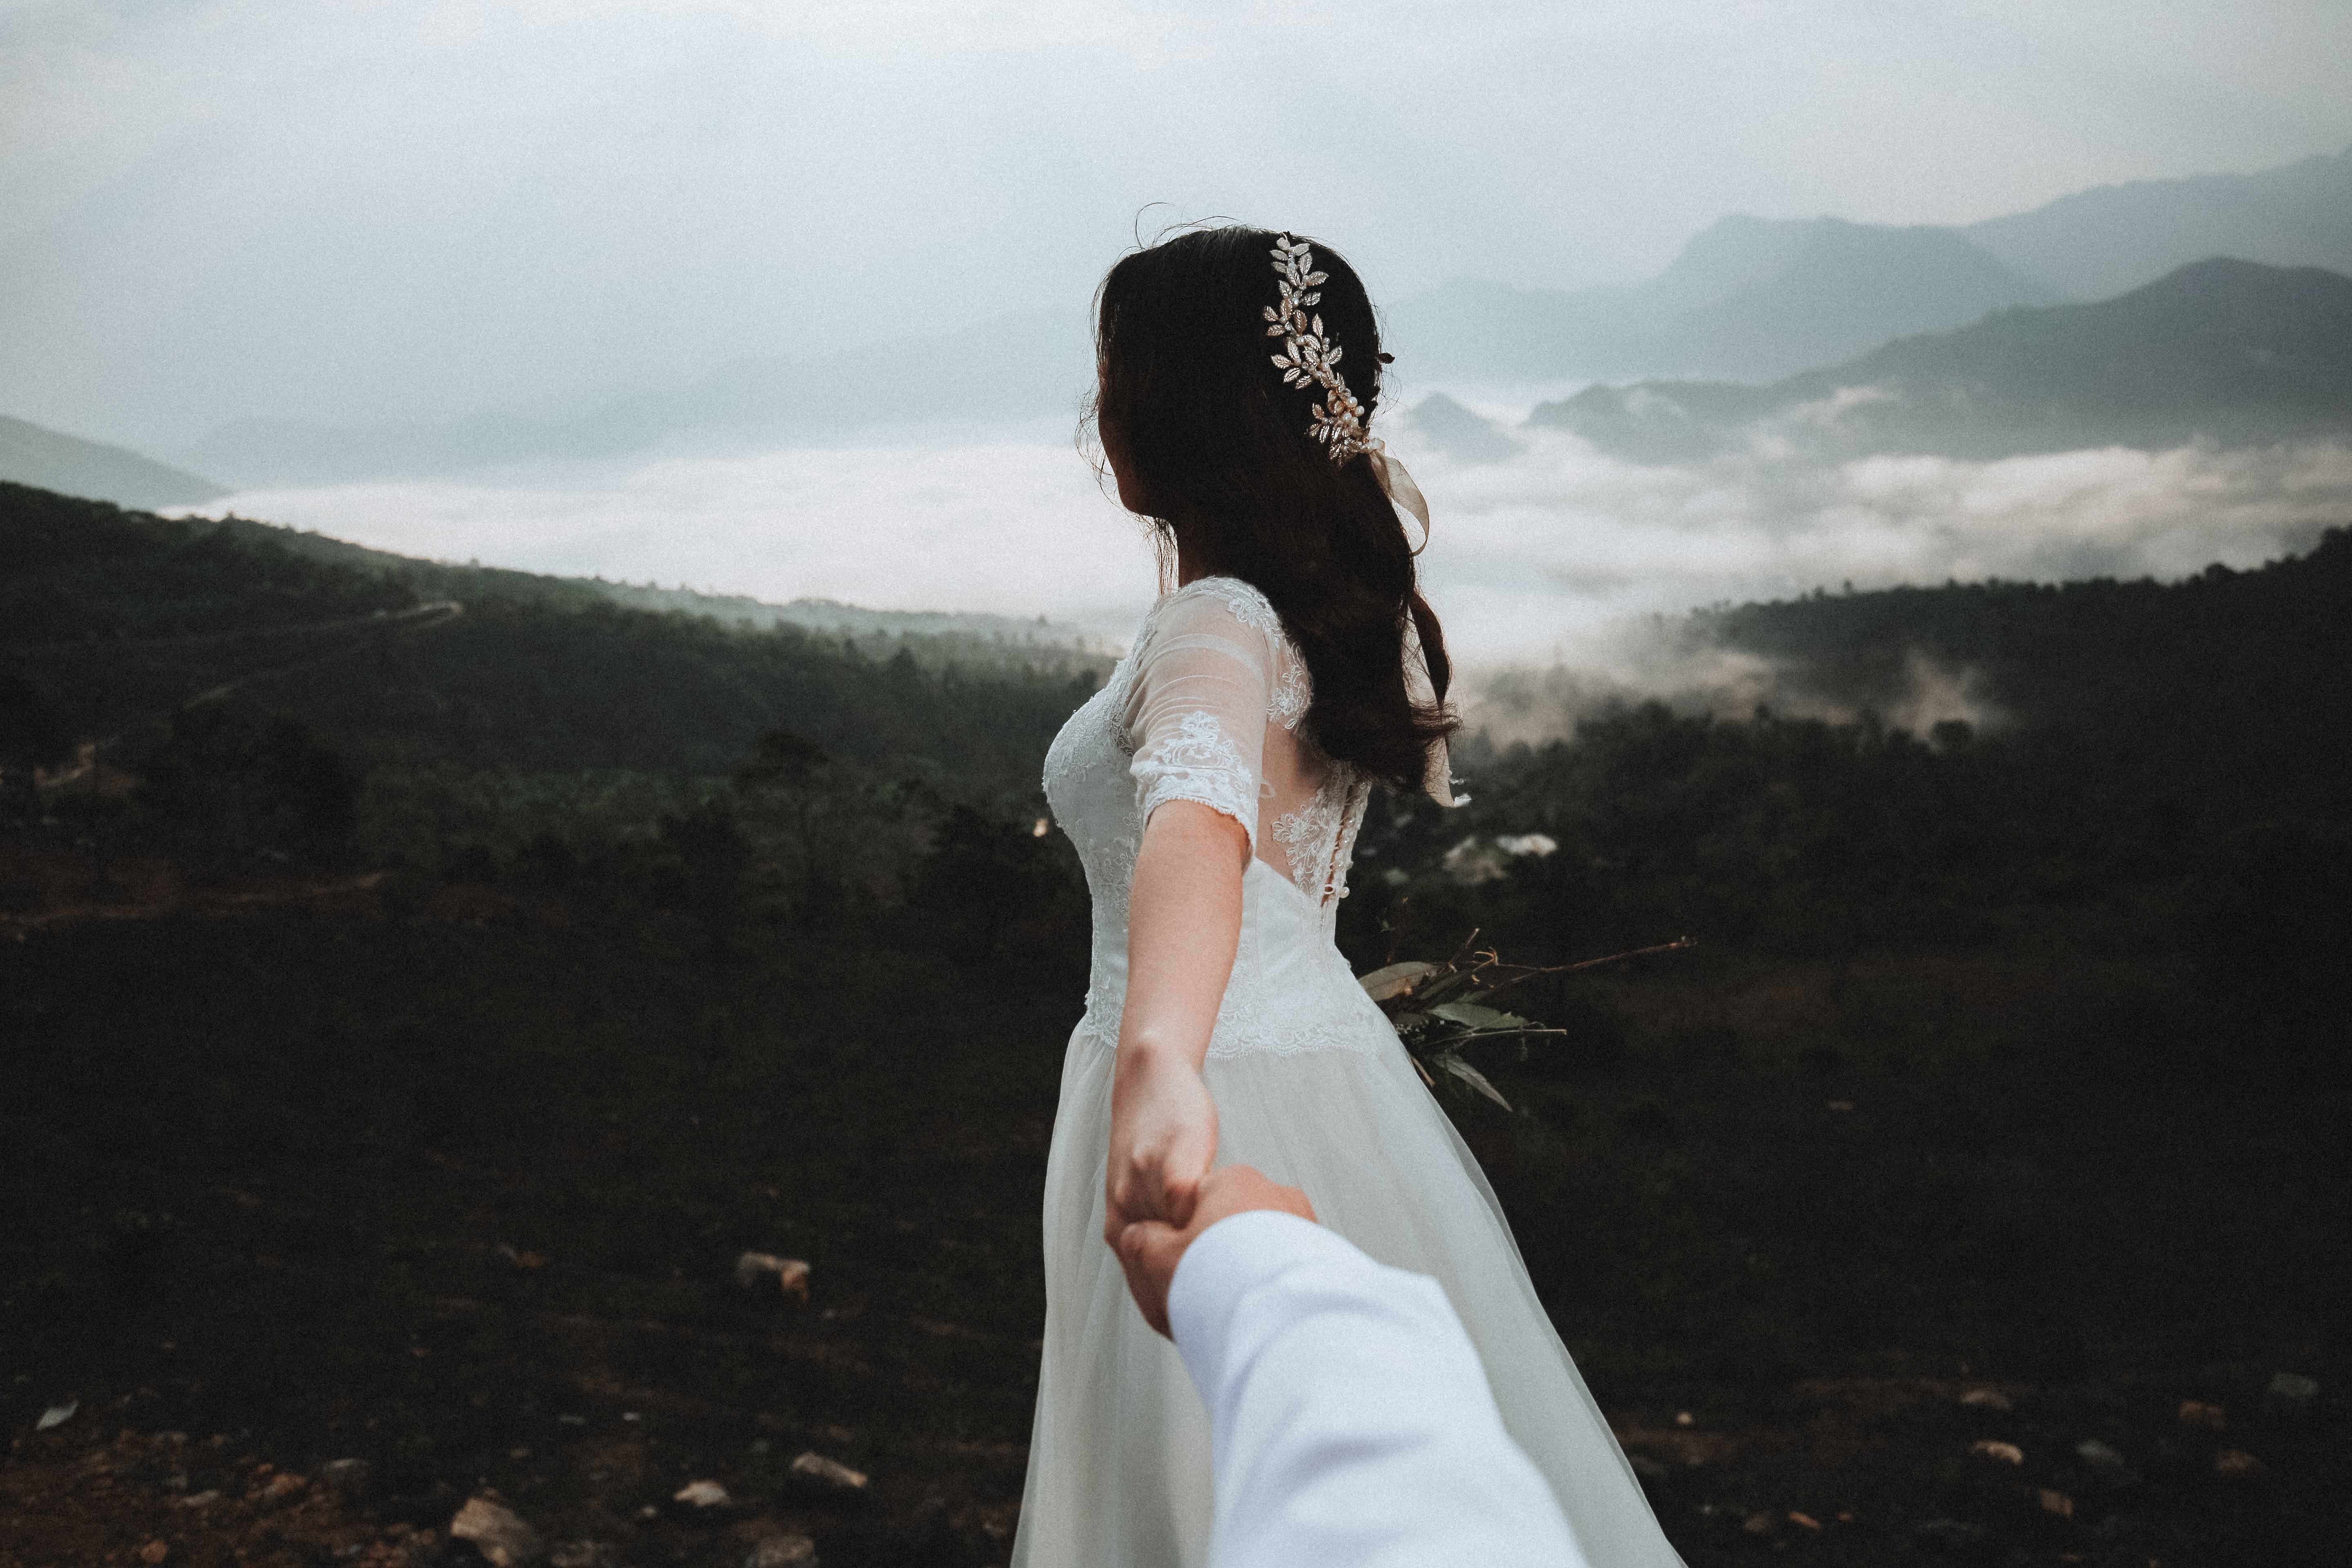 Civil Wedding Requirements How to Get Married in the Philippines1